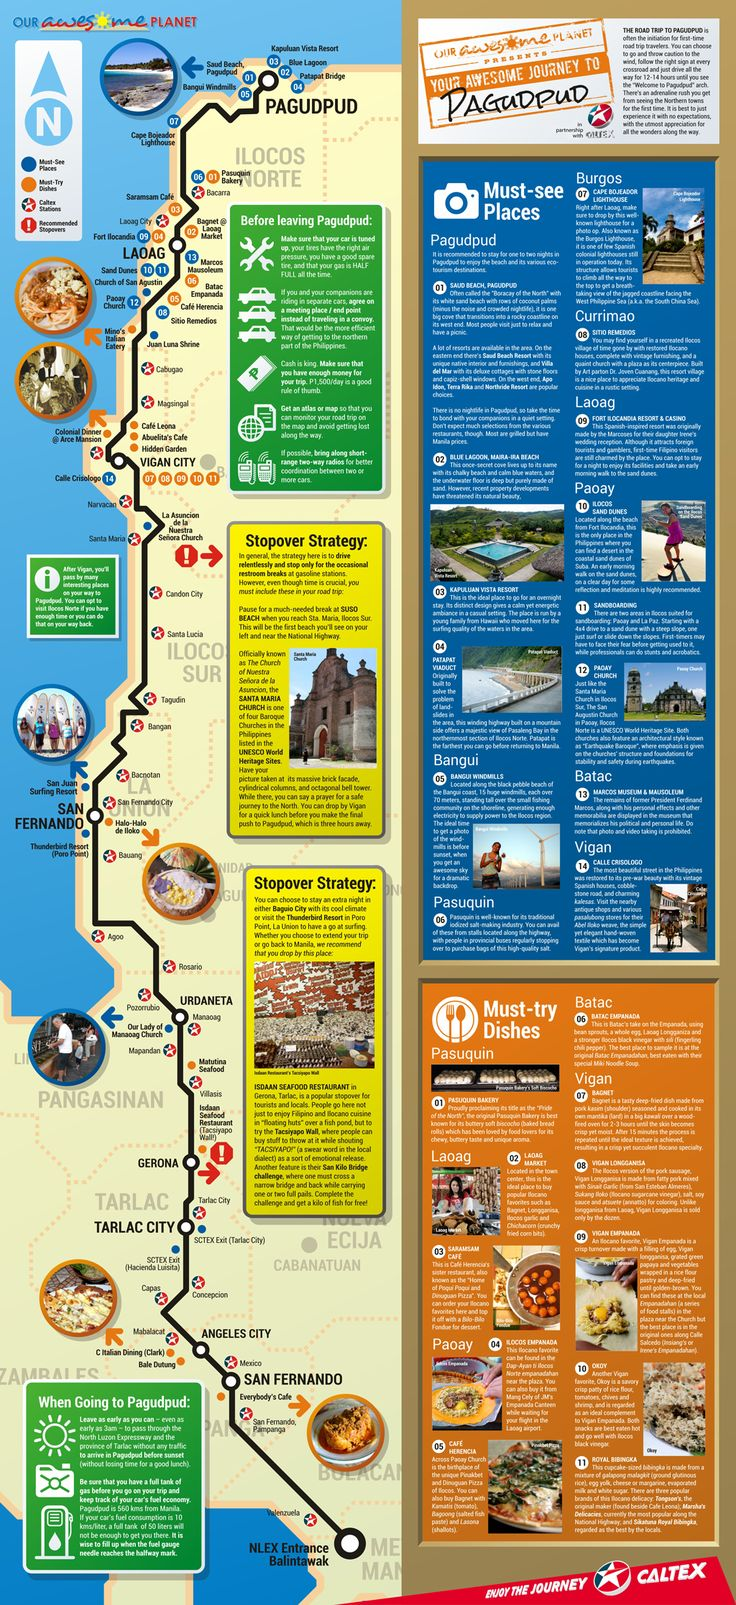 OUR AWESOME PLANET: PAGUDPUD: Your Awesome Journey to Pagudpud (Infographic)